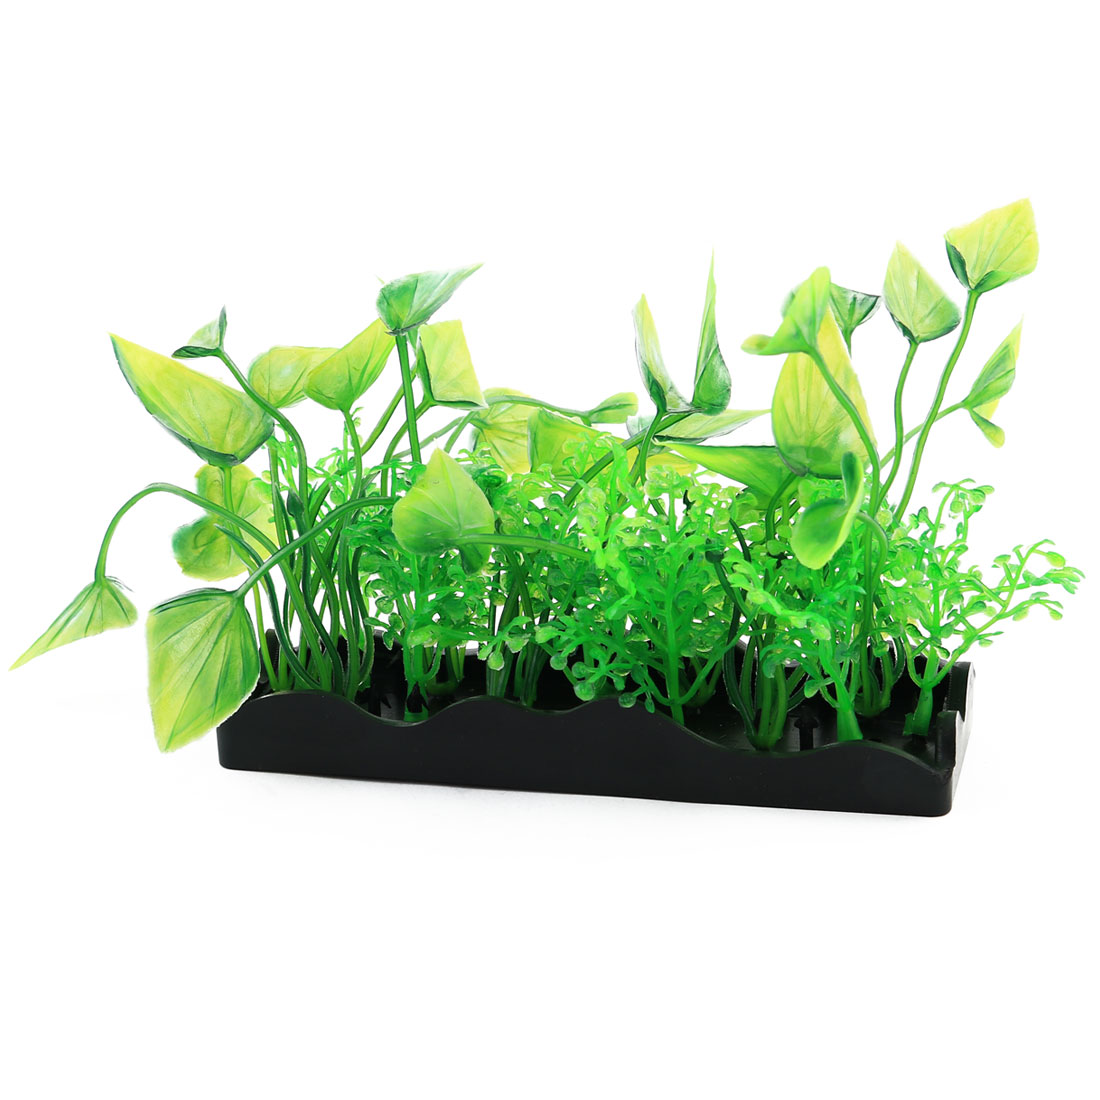 Unique BargainsFish Tank Plastic Artificial Plant Grass Ornament Decor Landspace Green Black